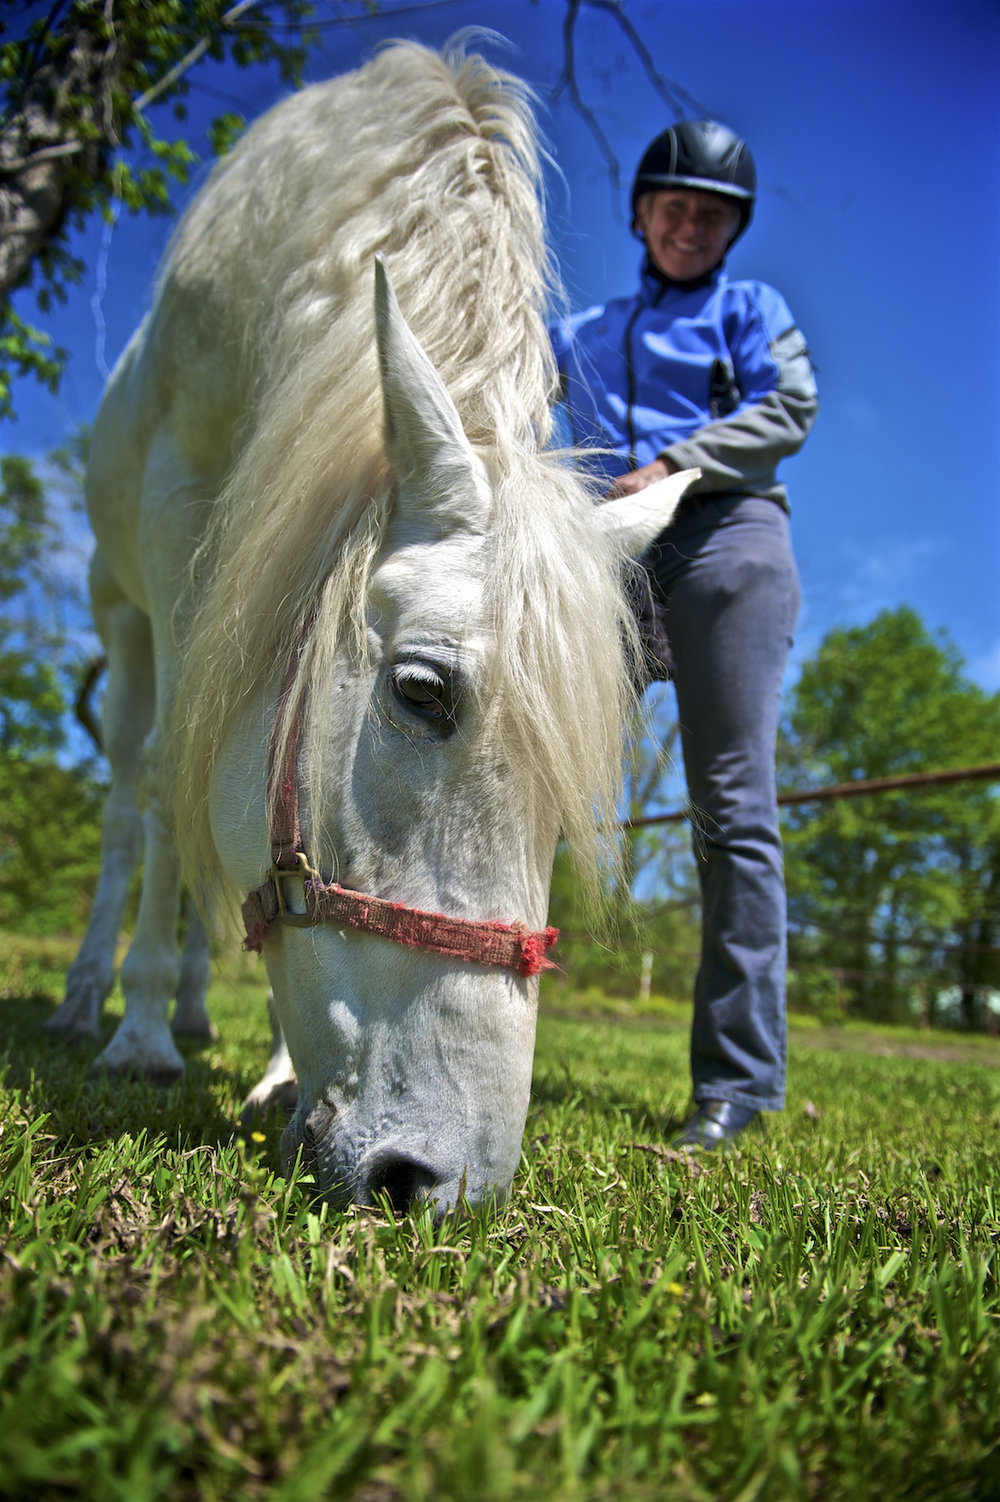 A woman poses with her horse on the Westbank of New Orleans.   Photographed by New Orleans based photographer, Marc Pagani